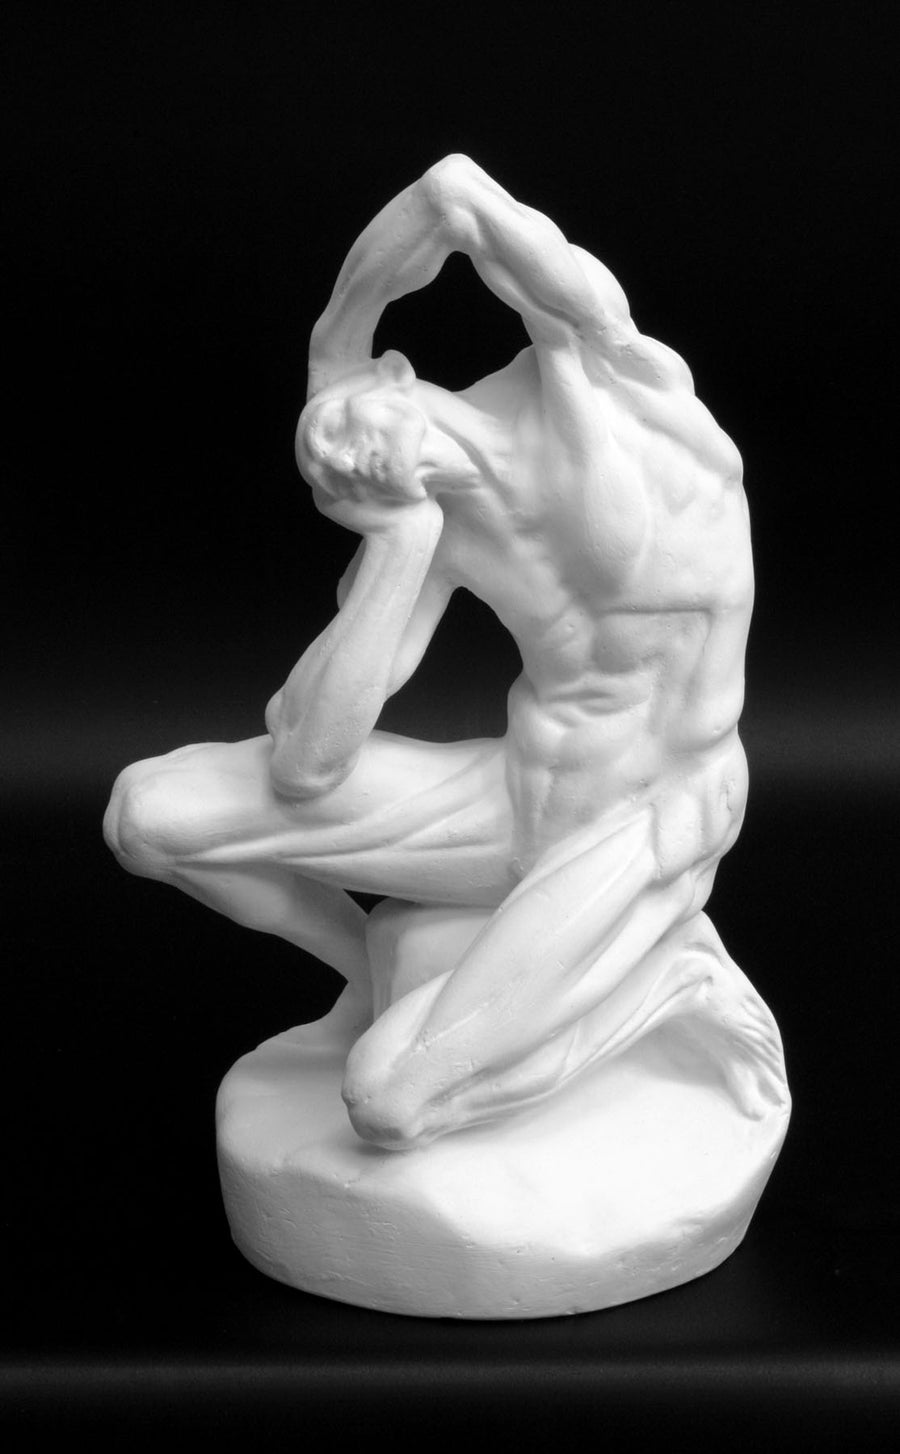 Photo of plaster cast sculpture of flayed man kneeling with hands on head on black background